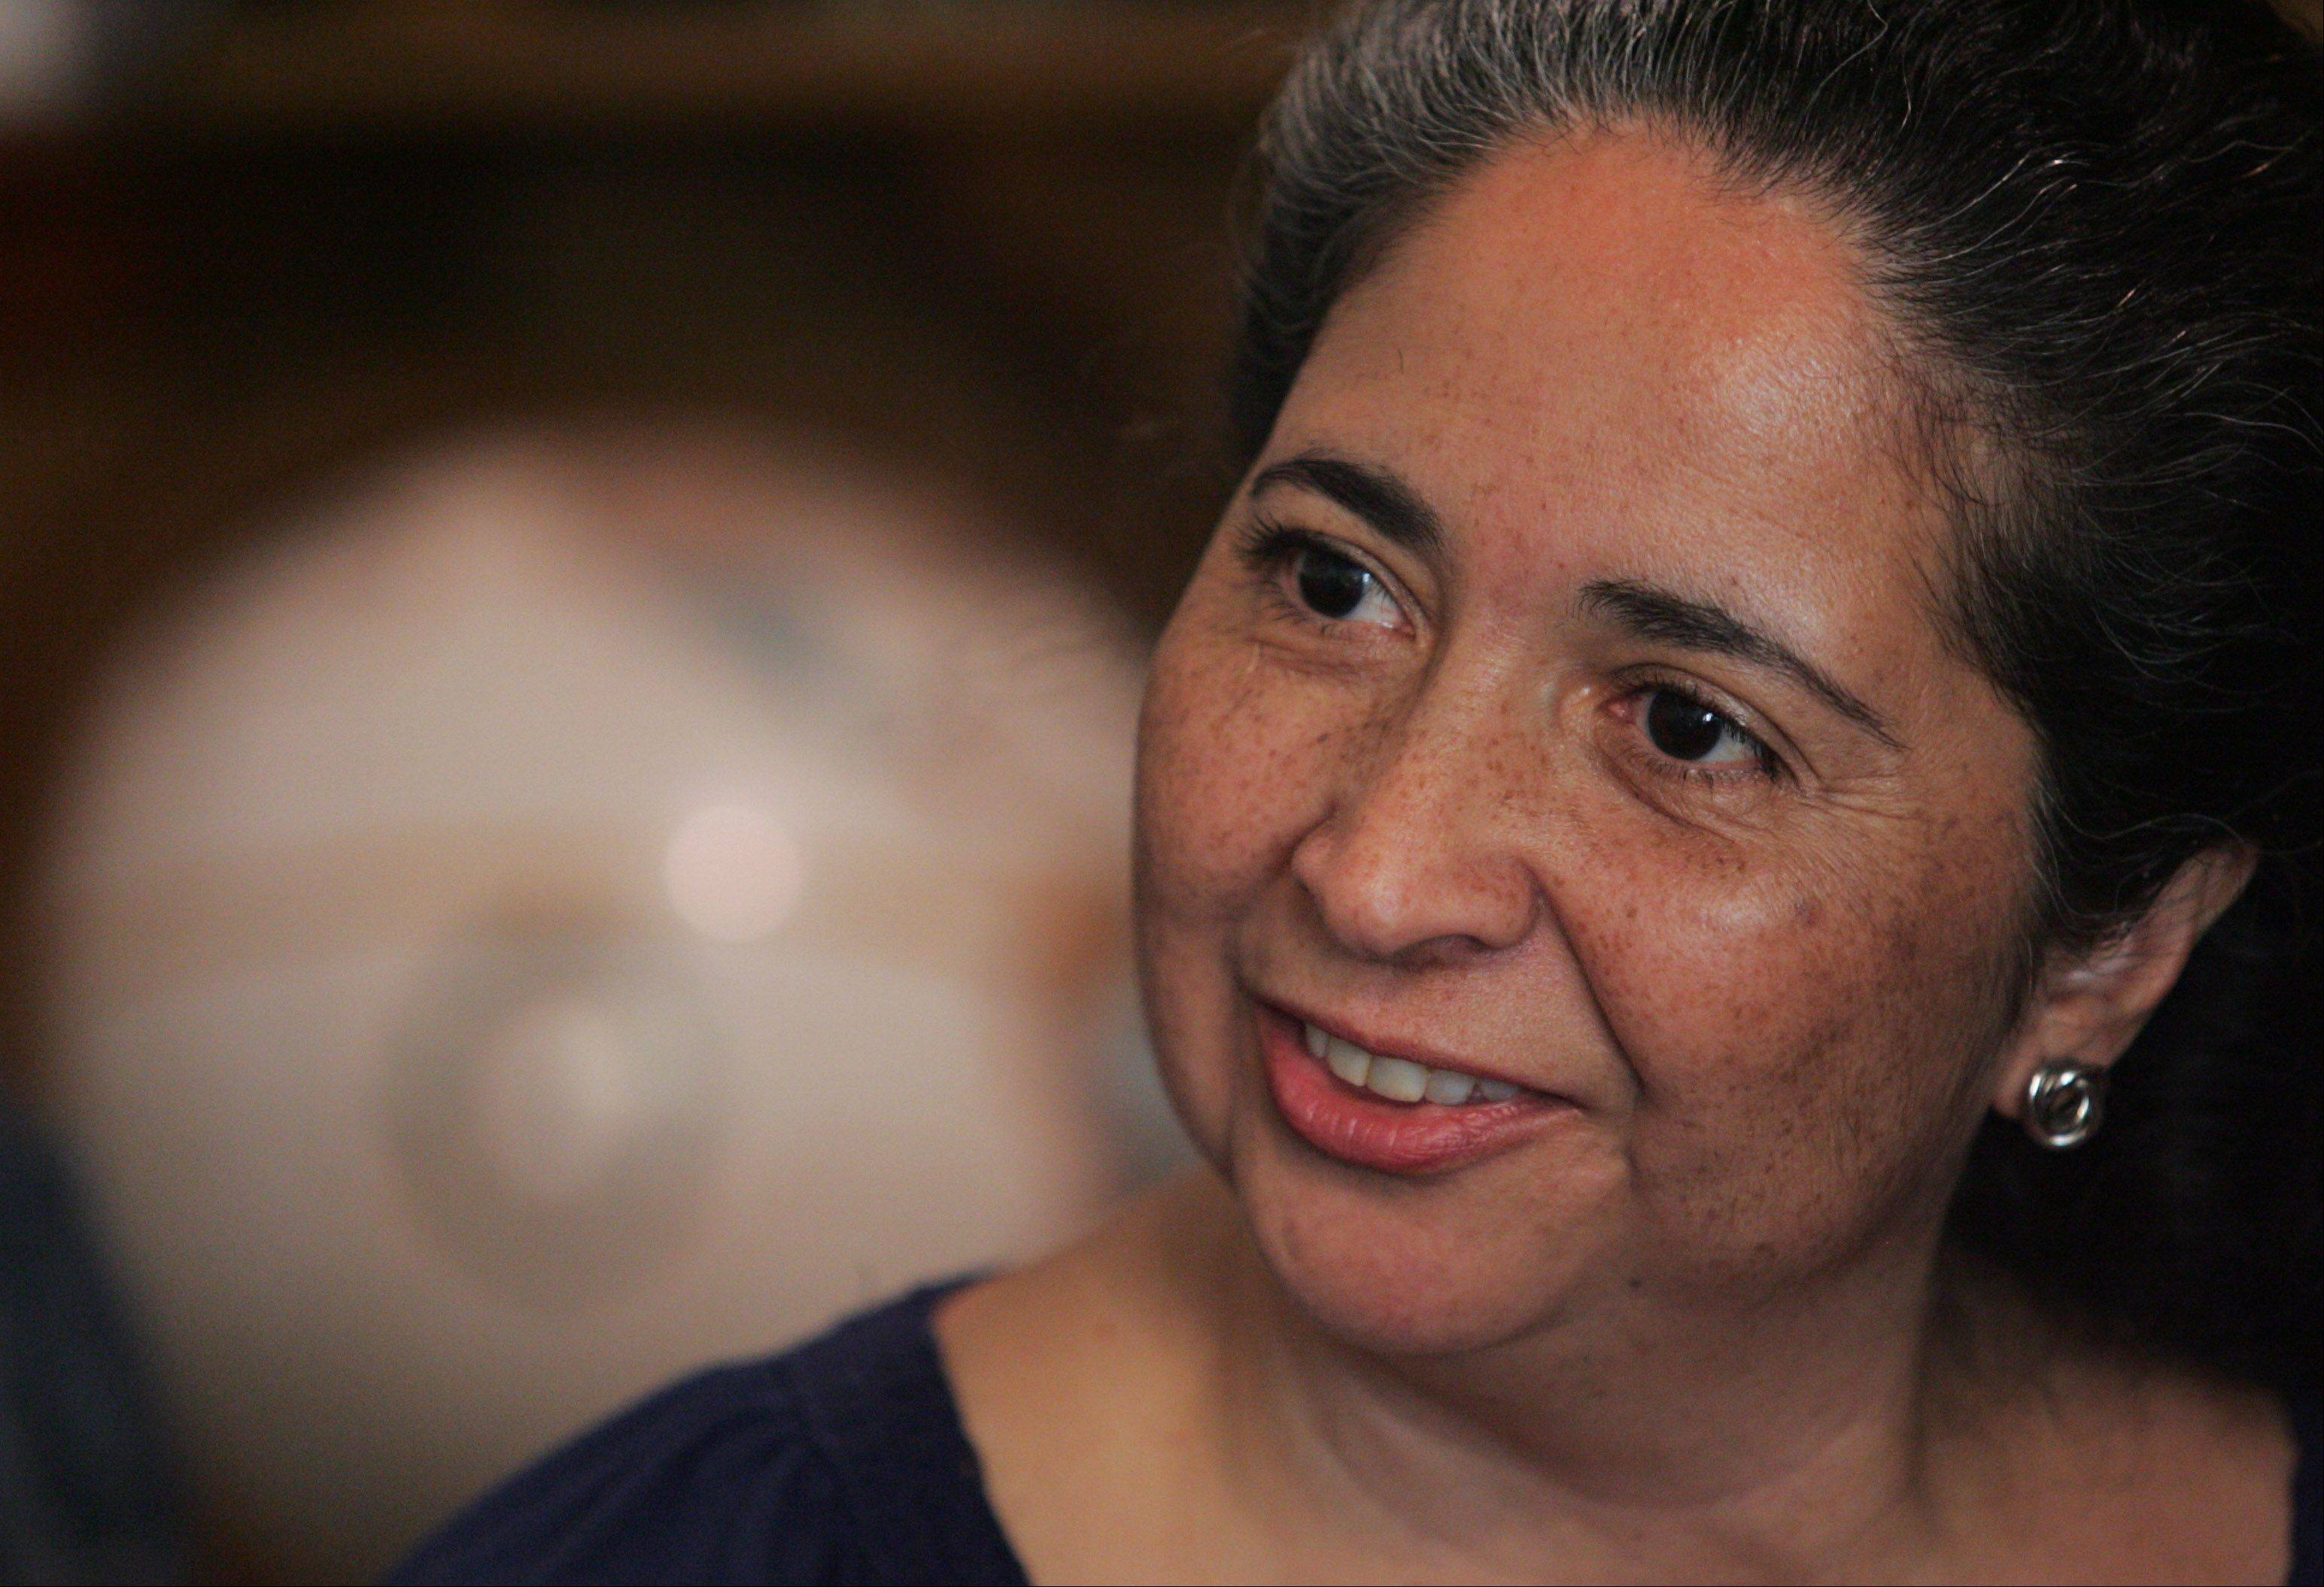 Helen L�pez Strom of Elgin has been a strong voice for the Latino community for years, most recently as president of LULAC Council 5236. She was recently named the 2012 Illinois Woman of the Year by the state League of United Latin American Citizens group.